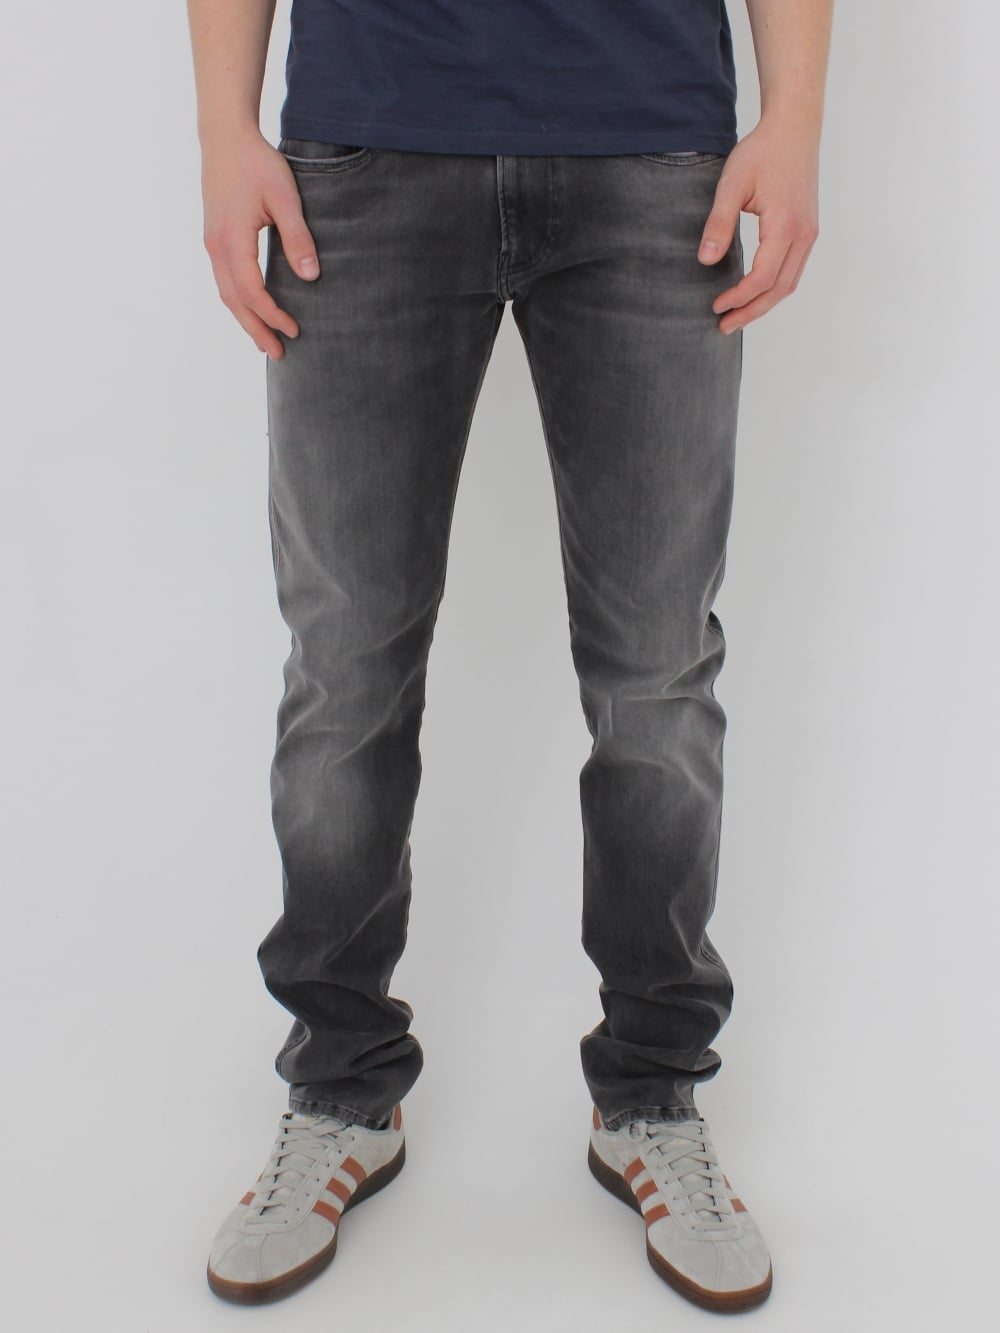 344bed9da6c067 Replay Anbass Hyperflex Jeans in Washed Black - Northern Threads